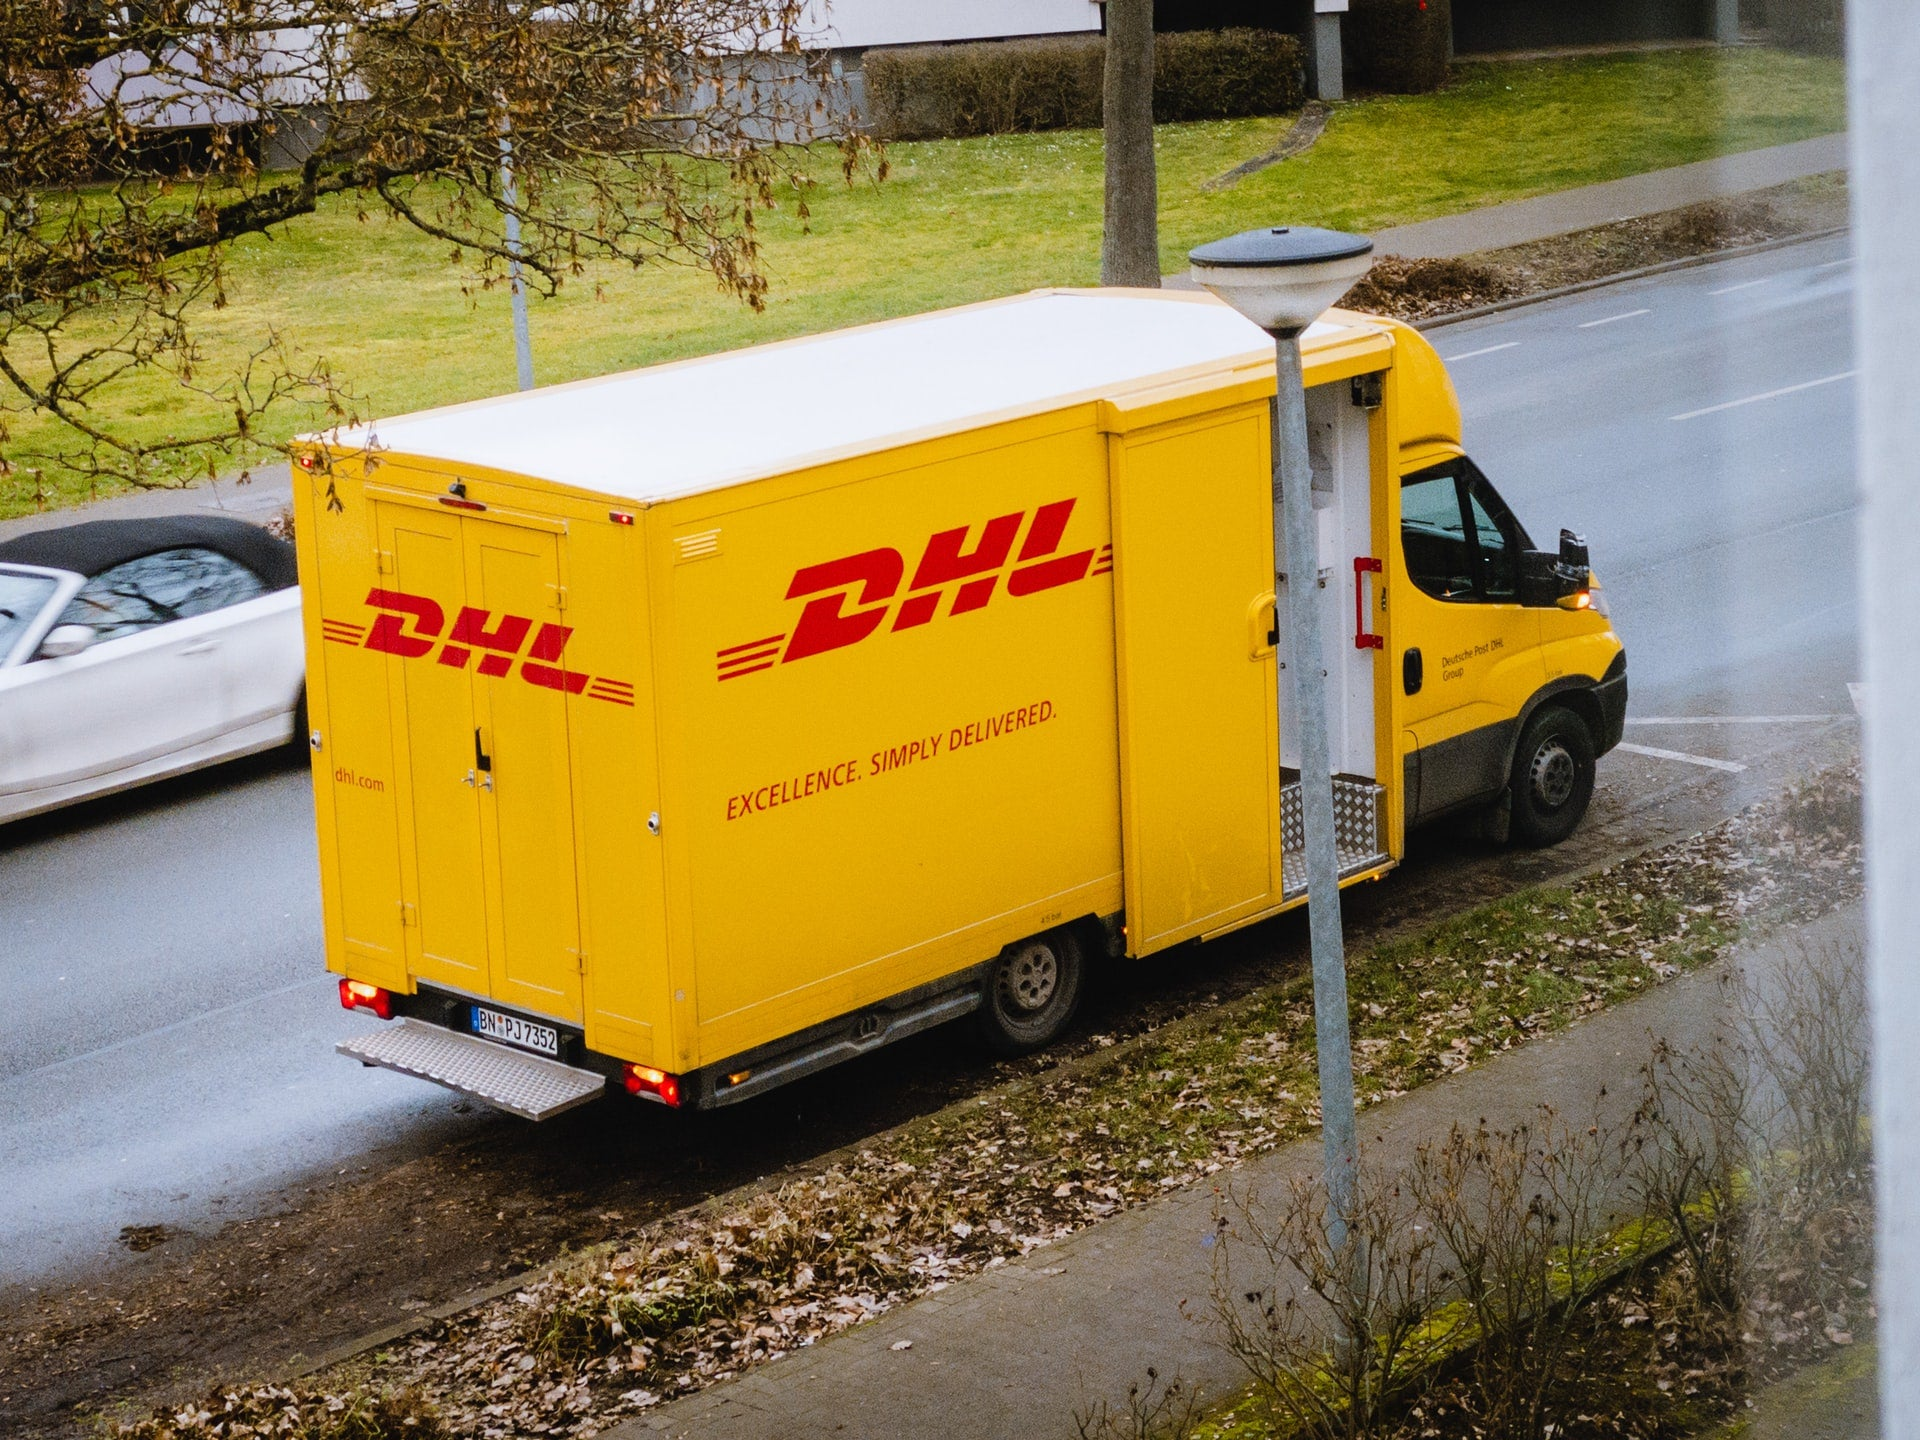 germany is home to largest logistics company